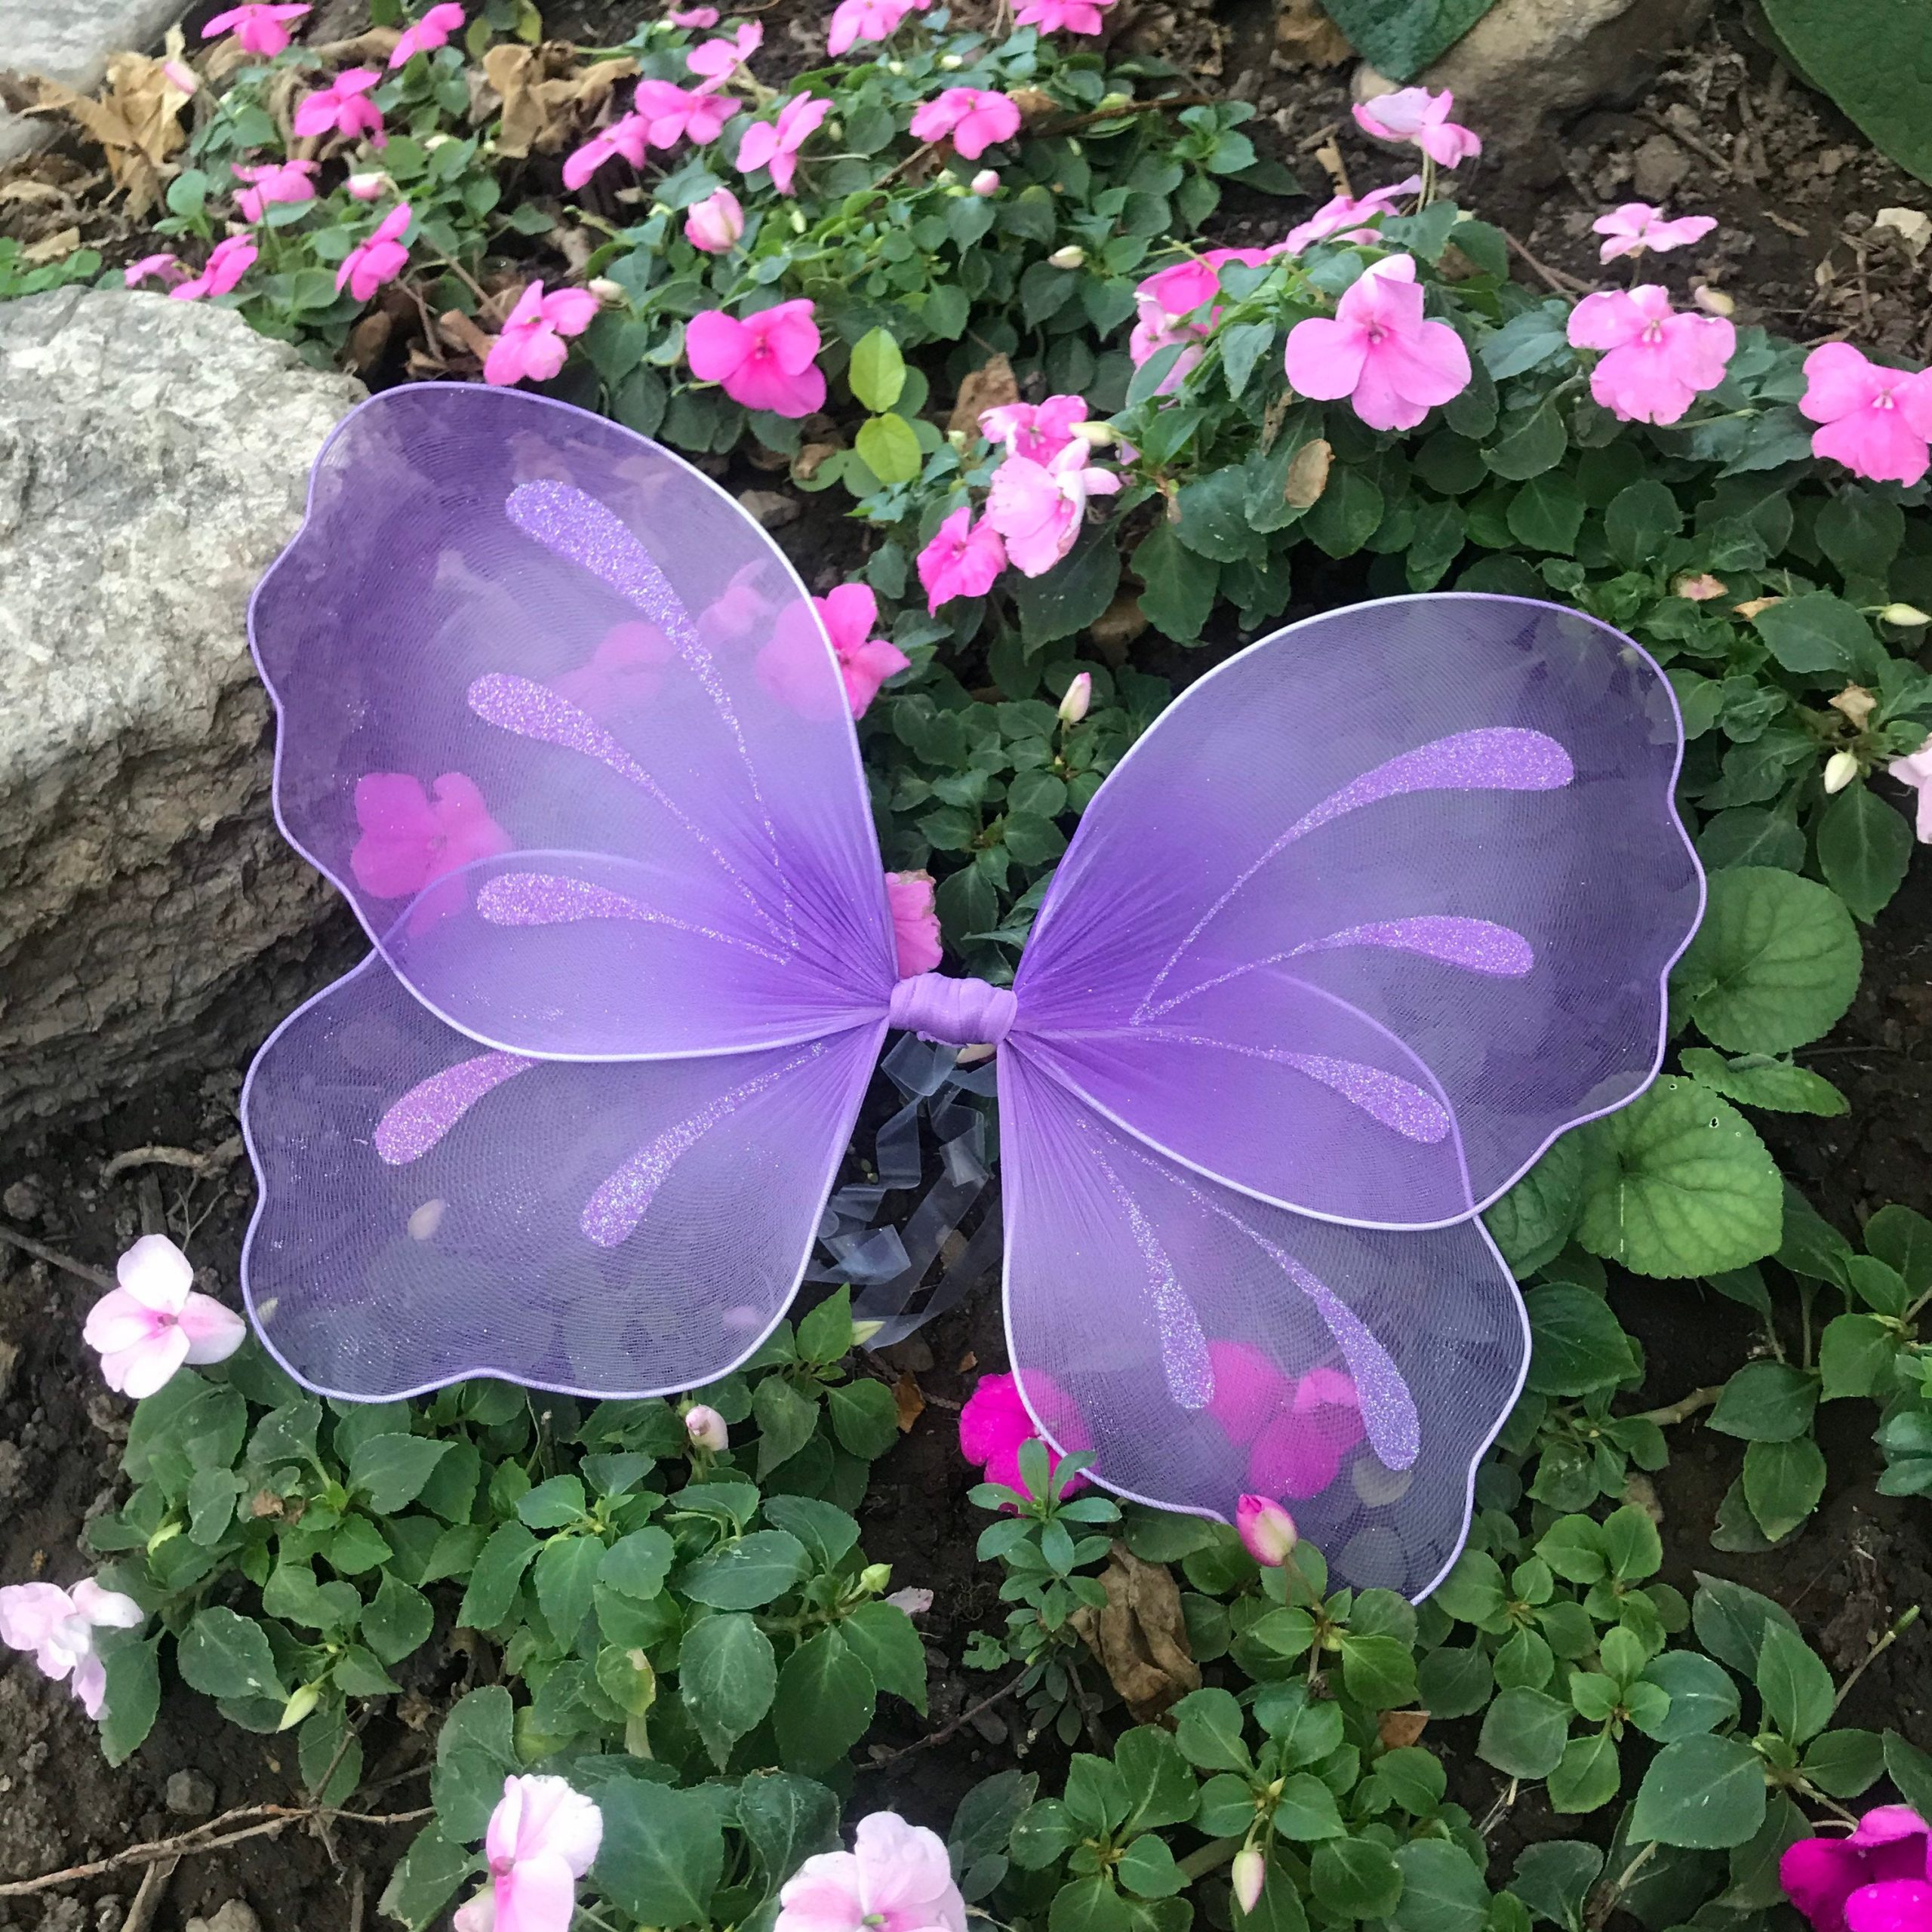 Purple Fairy Wings Costume Pixie Butterfly Outfit Baby Girl Kids Teen Adult Cosplay Rustic Woodland Wedding Forest Lavender Photo Shoot Prop